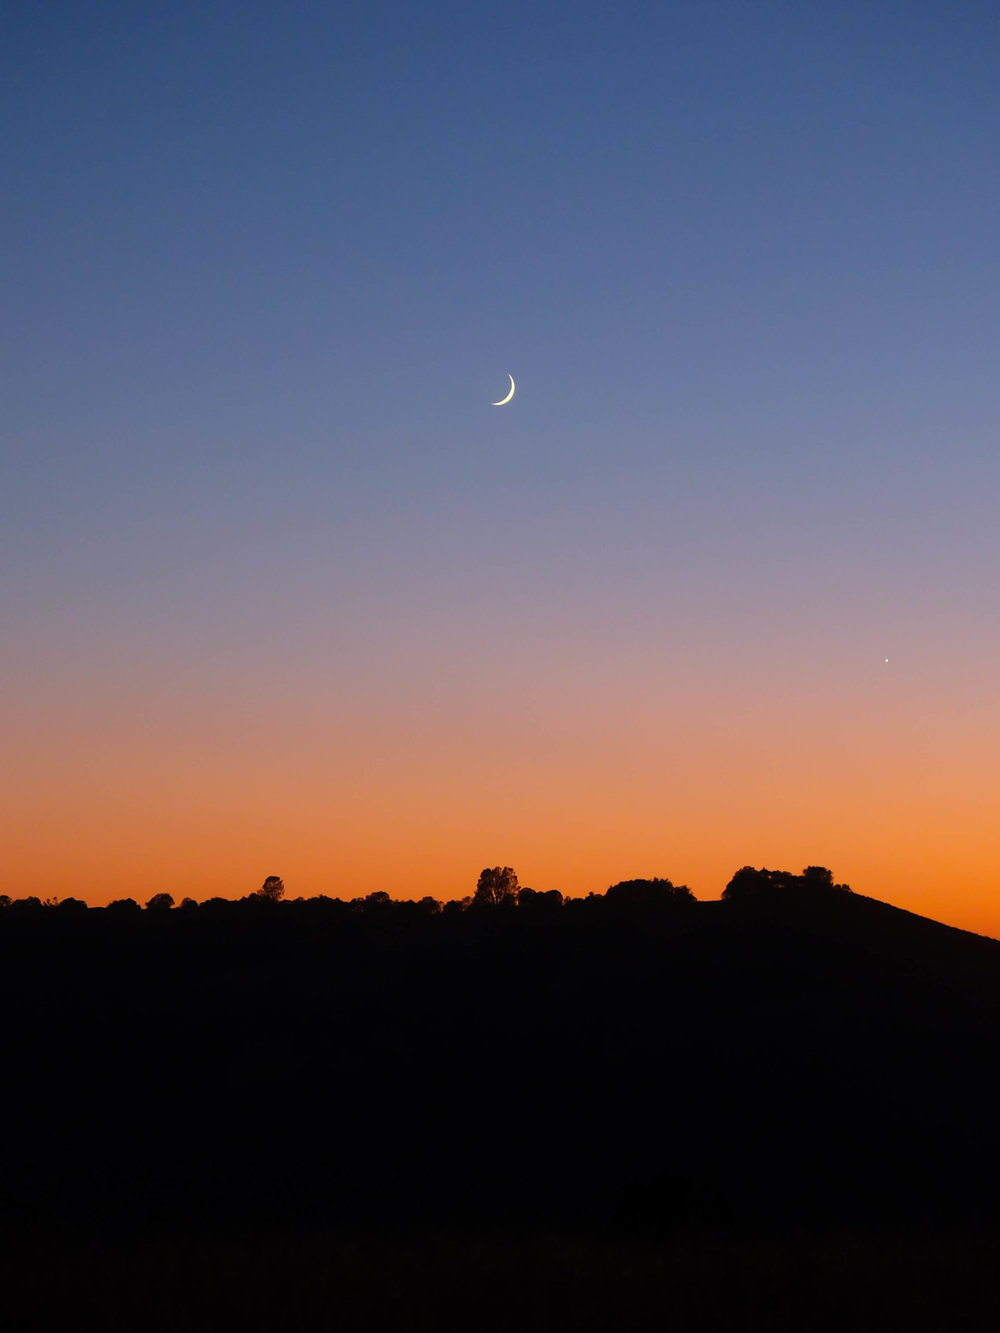 jacob-ruiz-design-photography-sunset-moon